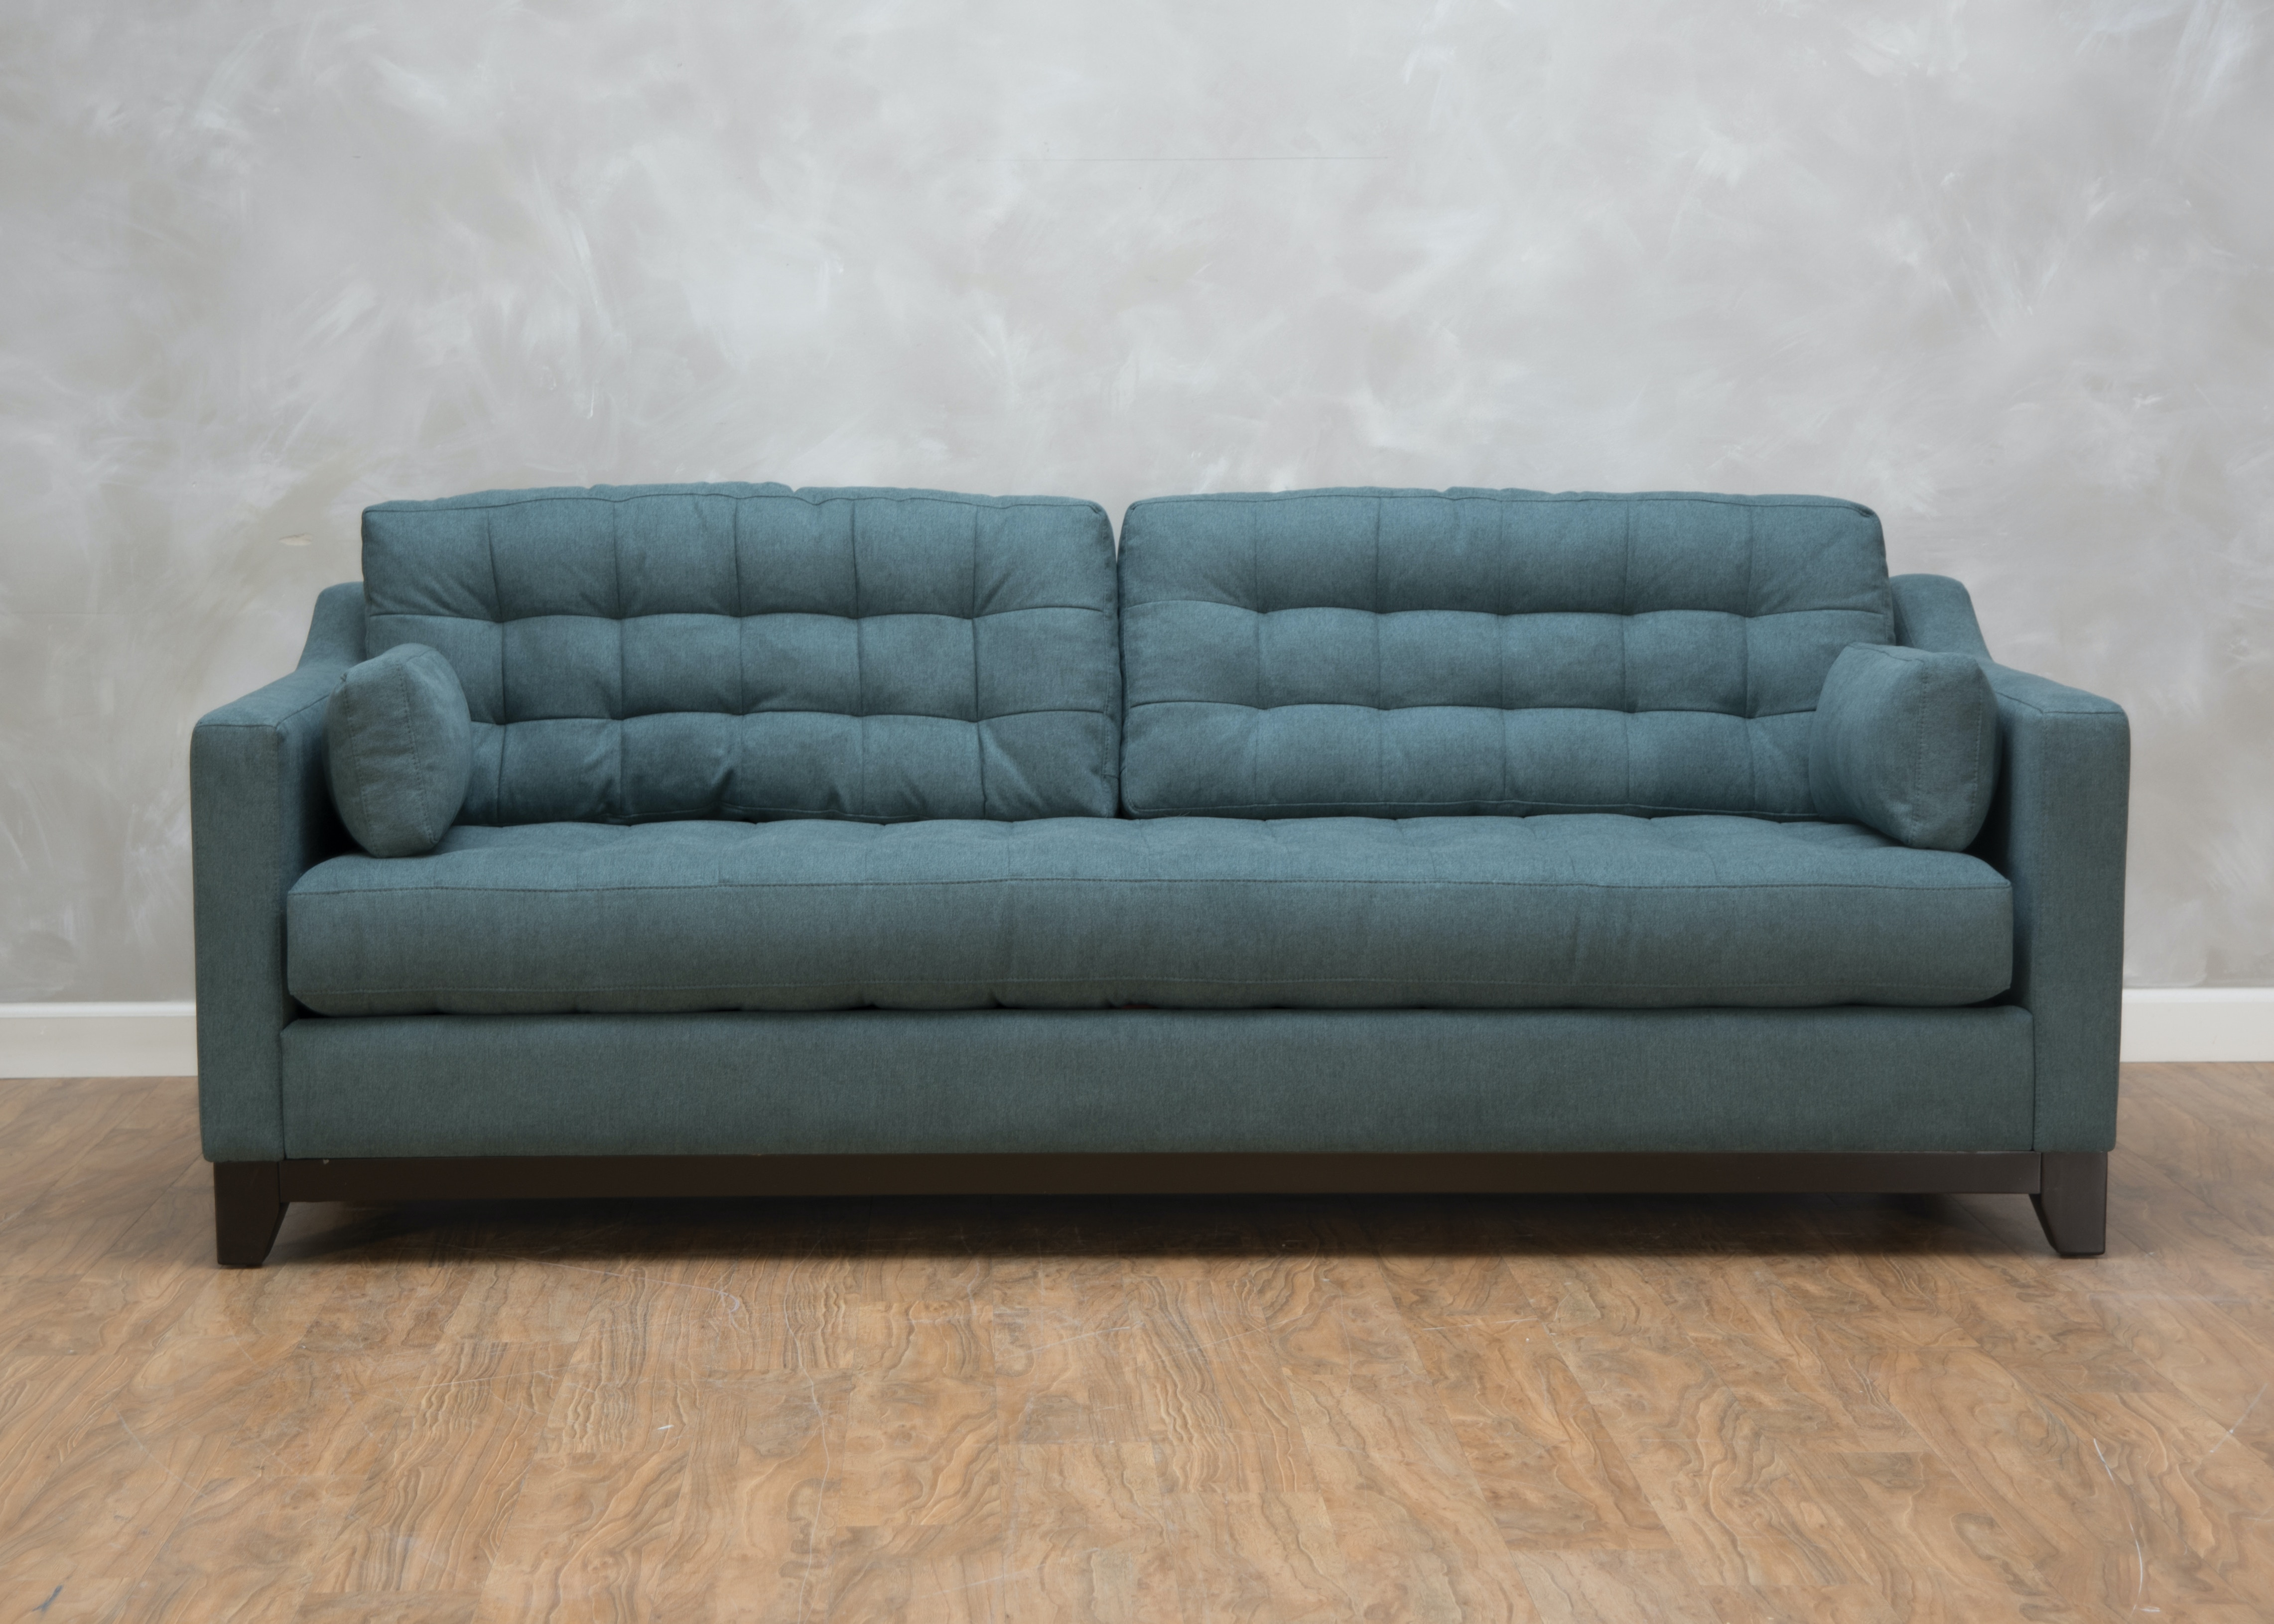 Delicieux Jonathan Louis International Cantrel Estate Sofa 554822